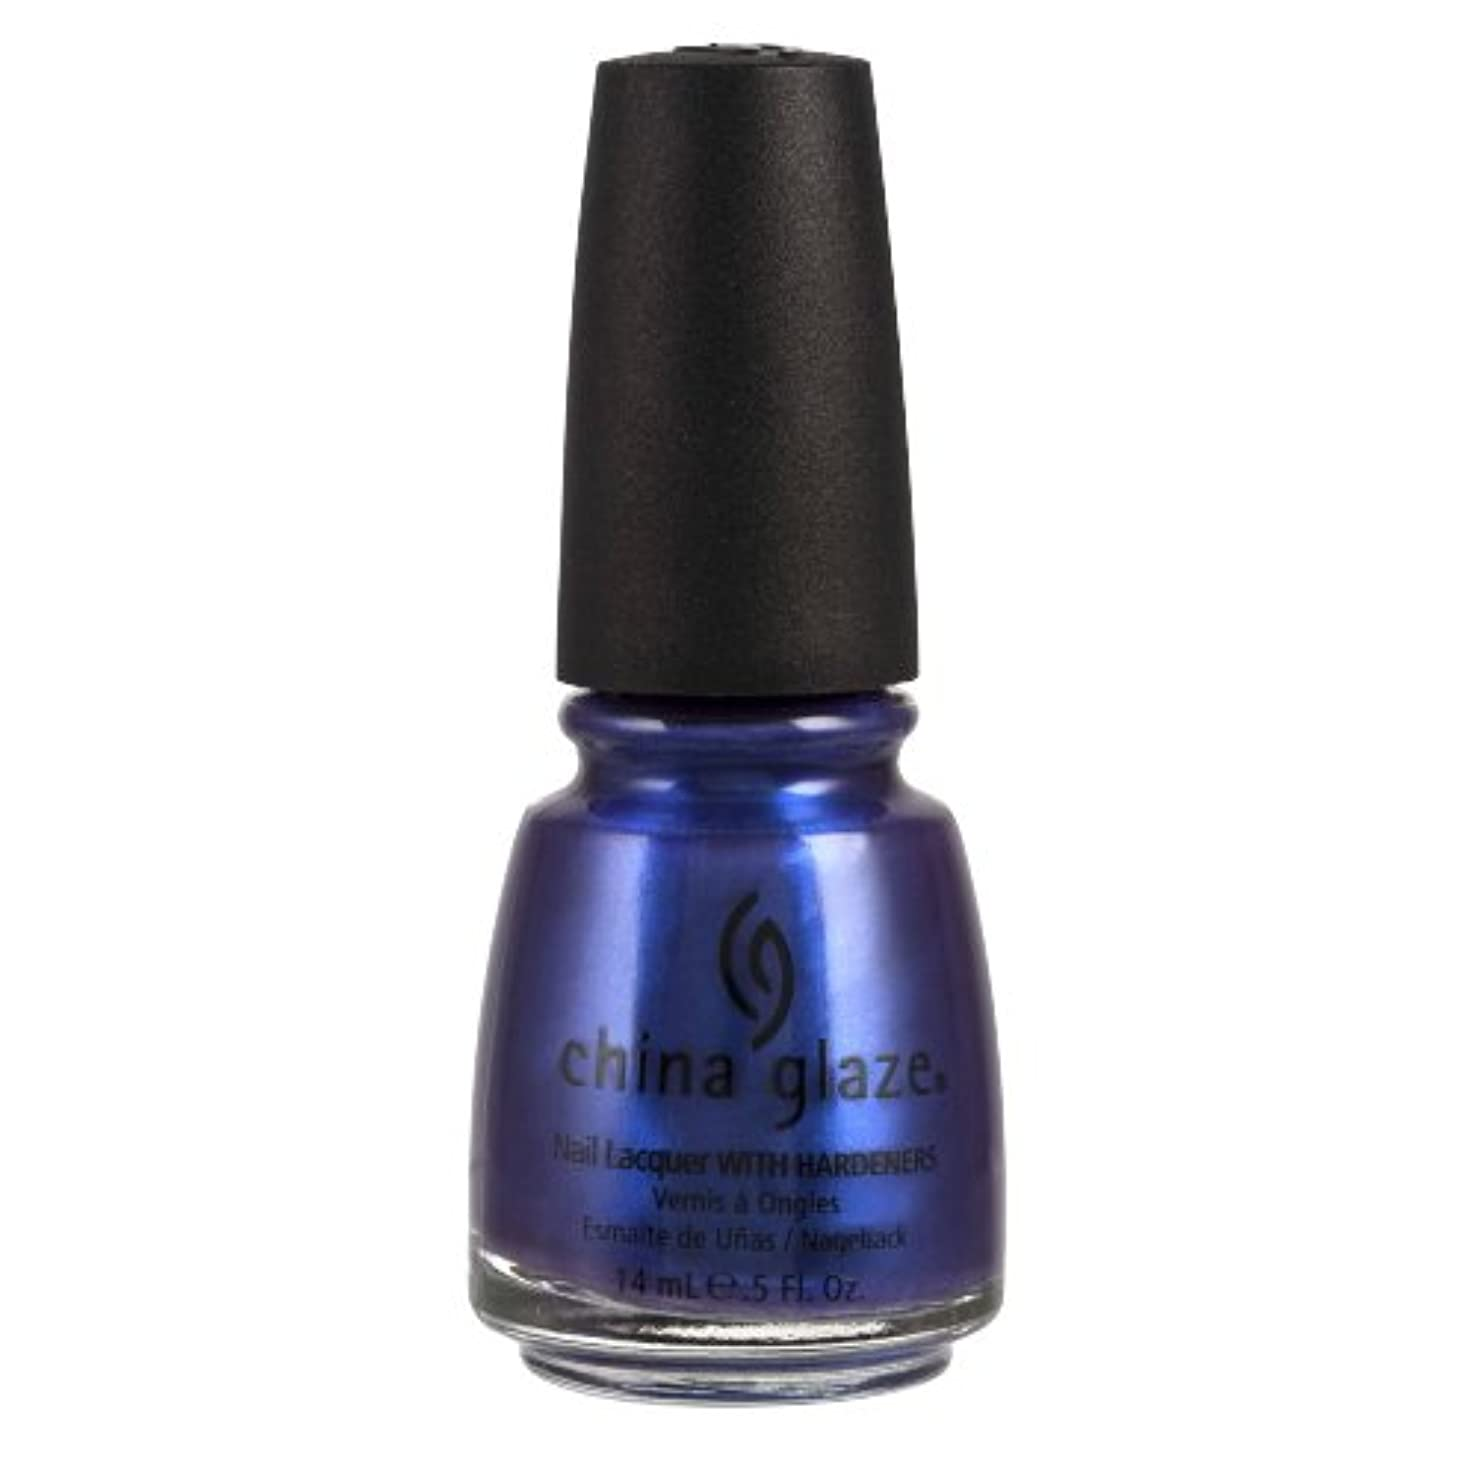 アーティスト誤解を招く肥満(3 Pack) CHINA GLAZE Nail Lacquer with Nail Hardner - Tempest (並行輸入品)